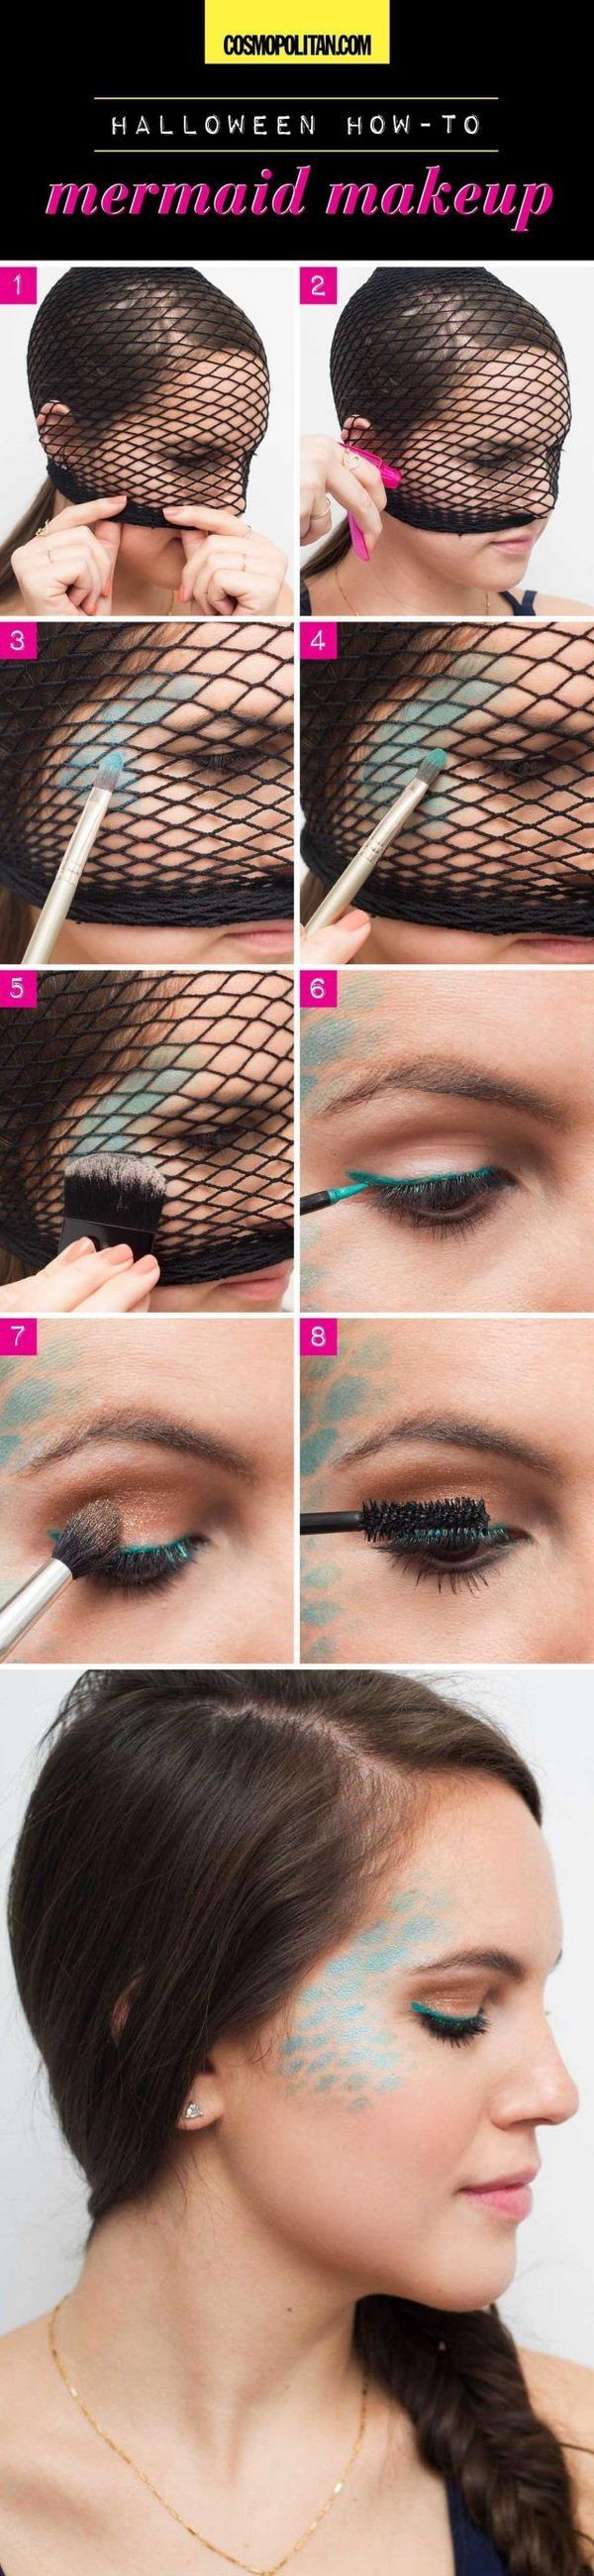 Mermaid Makeup Tutorial